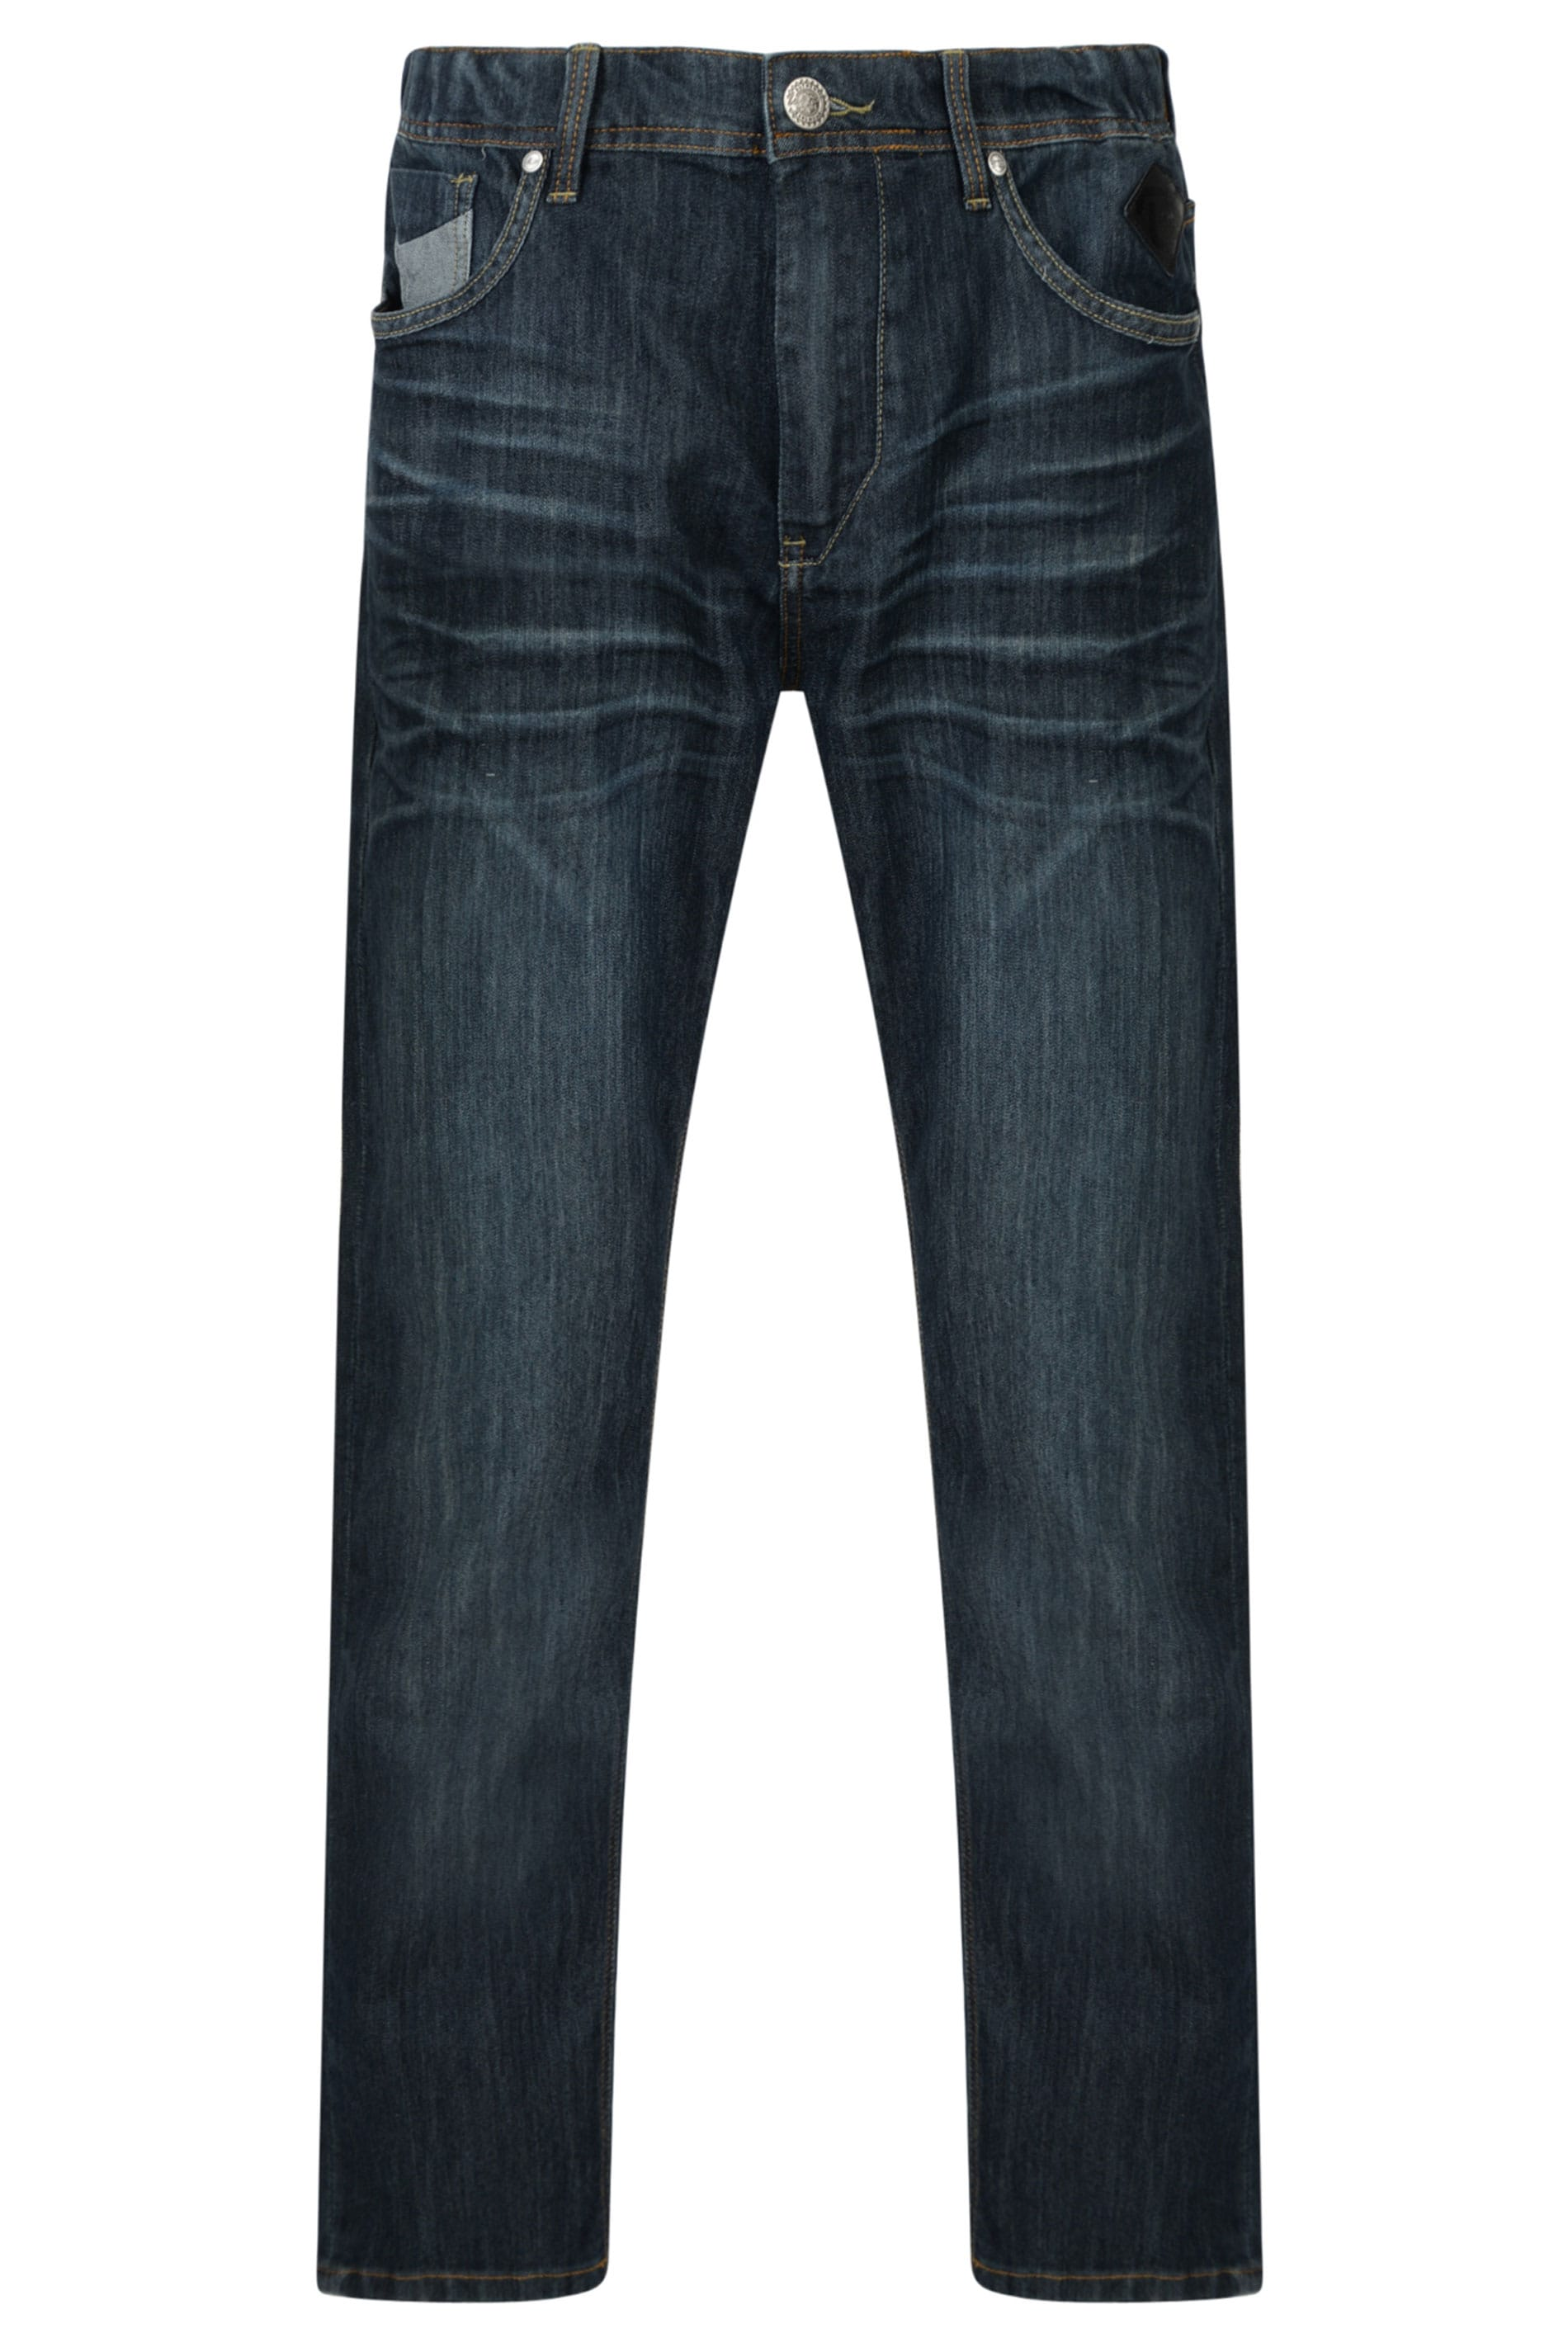 KAM Navy Blue Stretch Denim Jeans